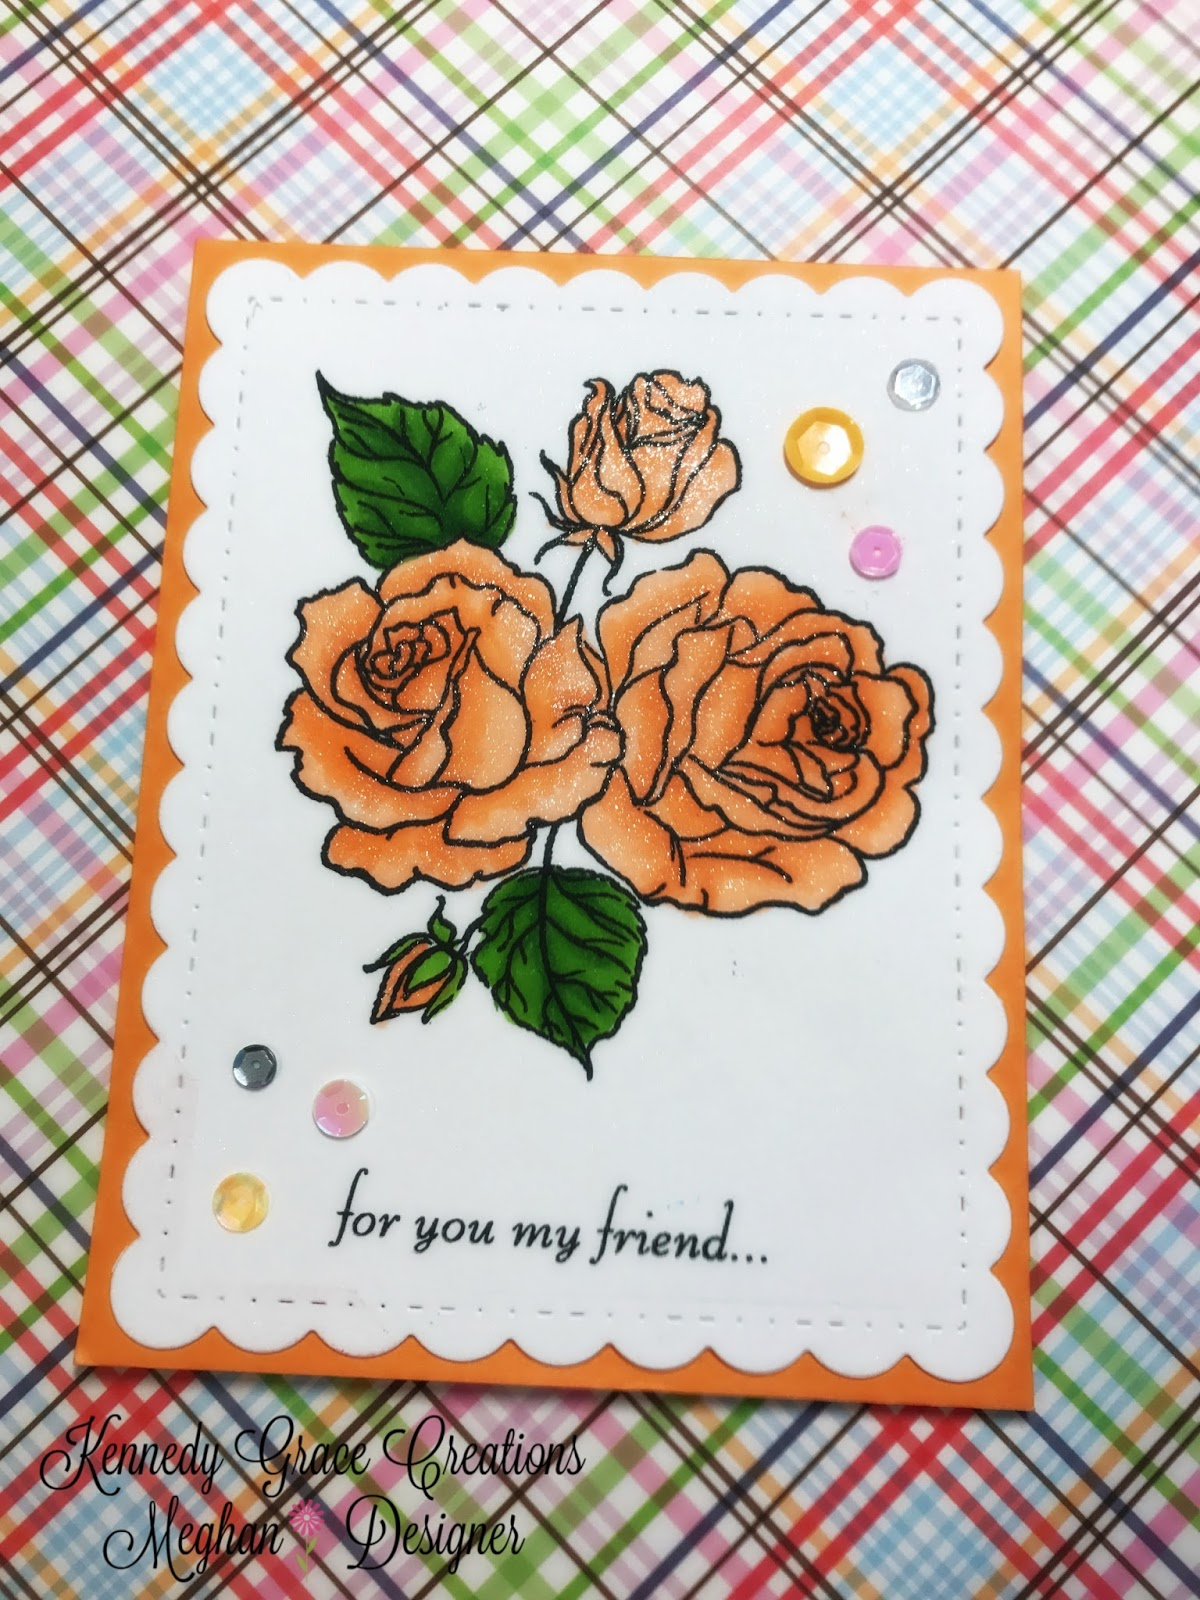 Clean and simple stamping and copic coloring with splendid rose